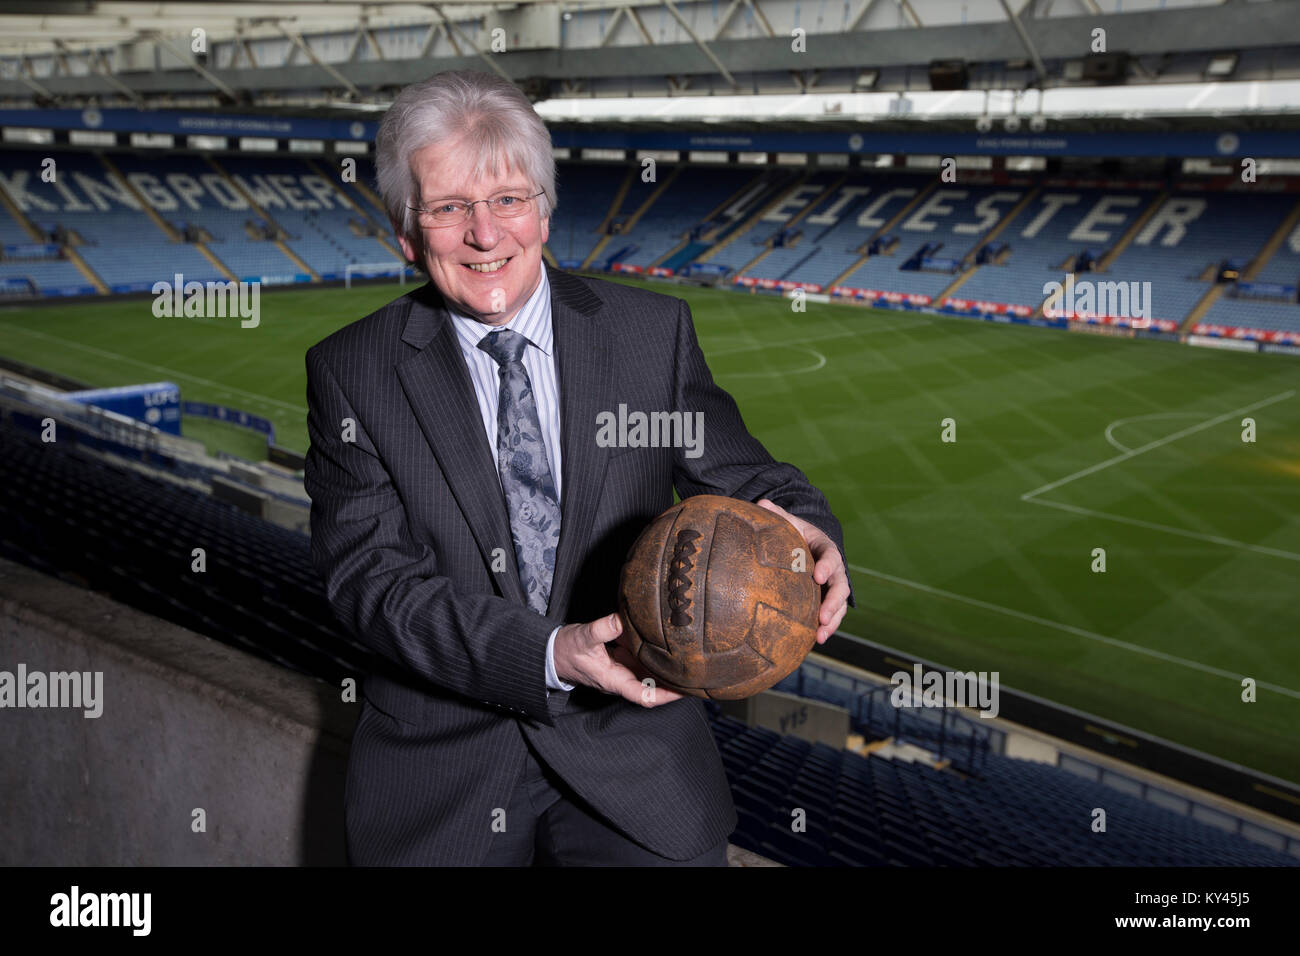 John Hutchinson, the club historian and archivist, pictured inside Leicester City's King Power stadium, holding Stock Photo